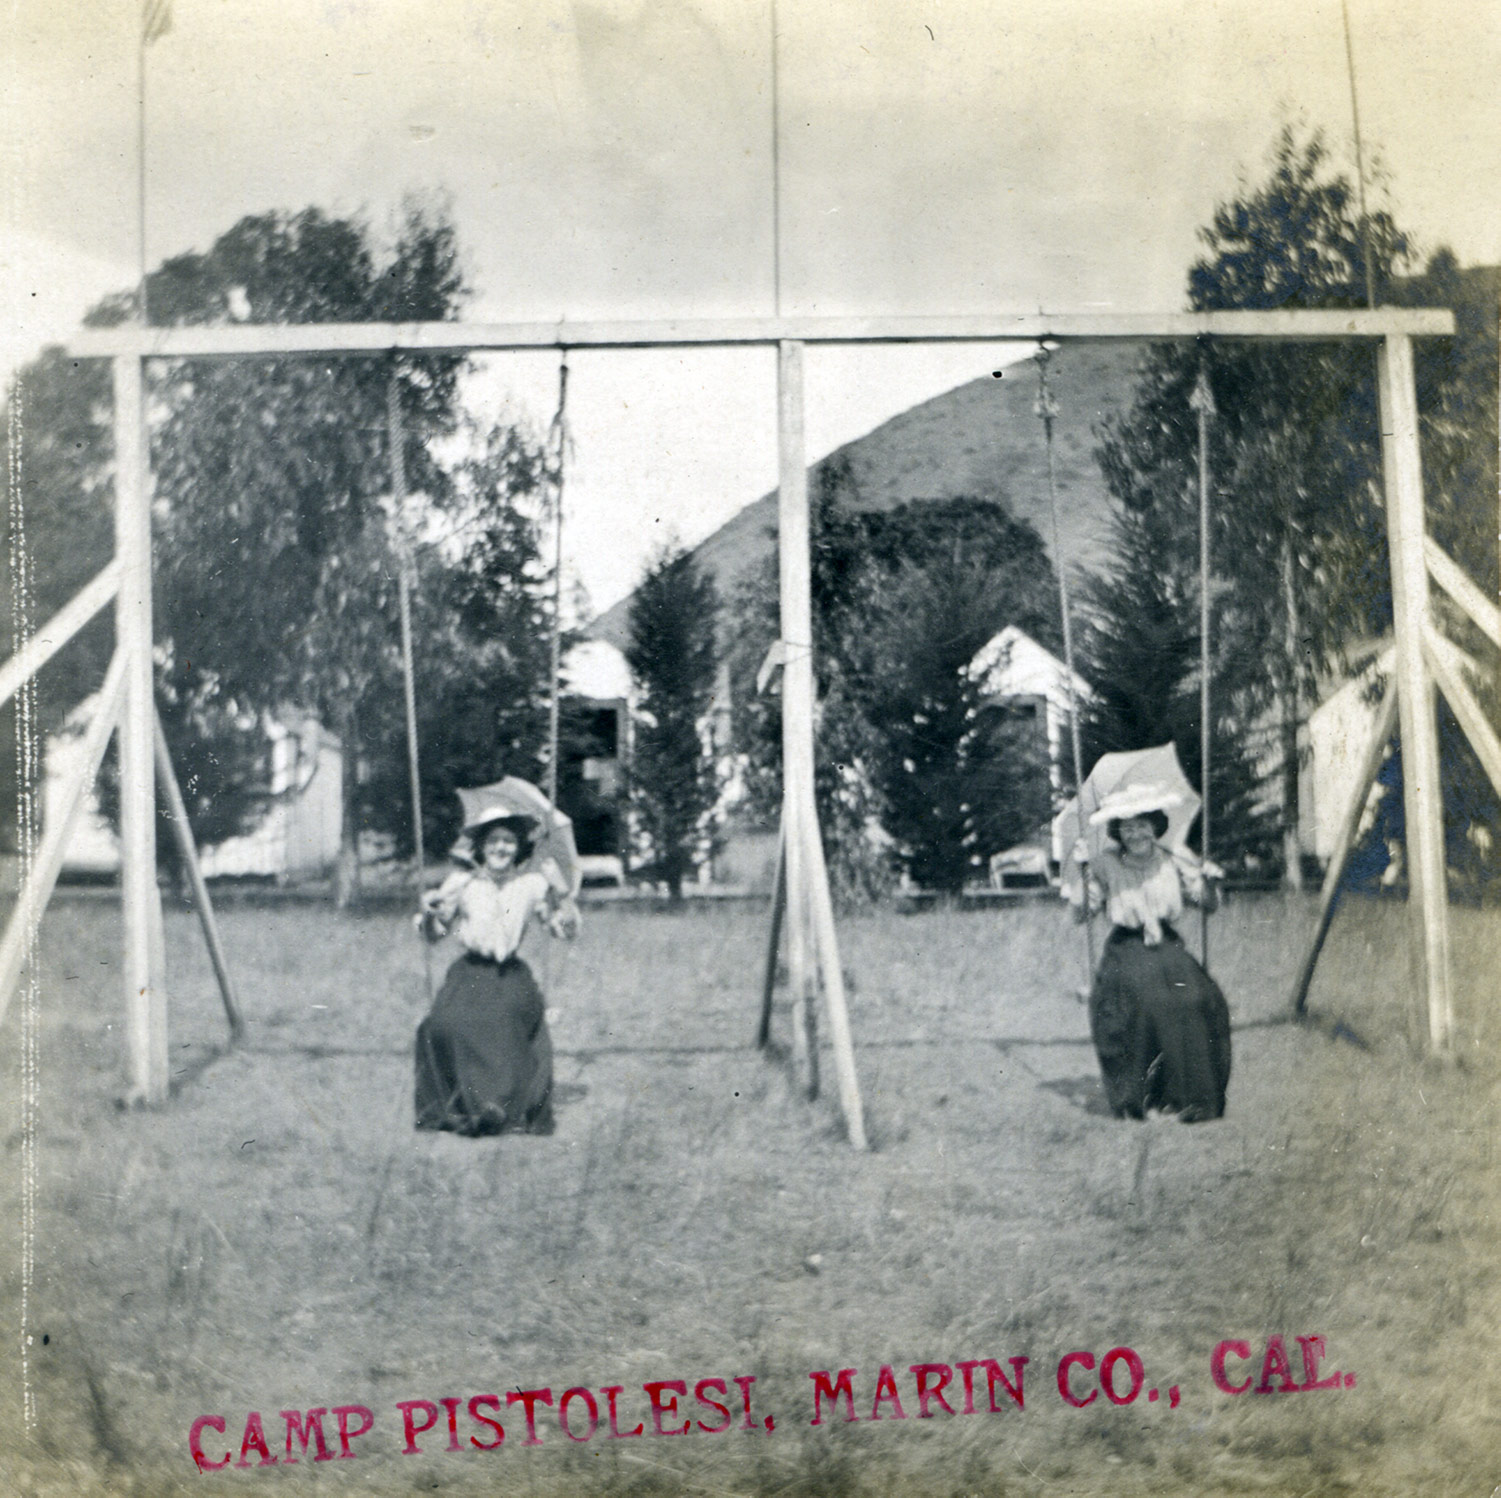 Camp Pistolesi was a small, modest resort across Keys Estuary, just south of Tomales. There was a railroad flag stop here, and tiny cabins. The spot was popular with locals and vacationers alike, apparently the kind of special place that inspired children and adults to enjoy the swing set. Photo by Ella Jorgensen, circa early 20th century.